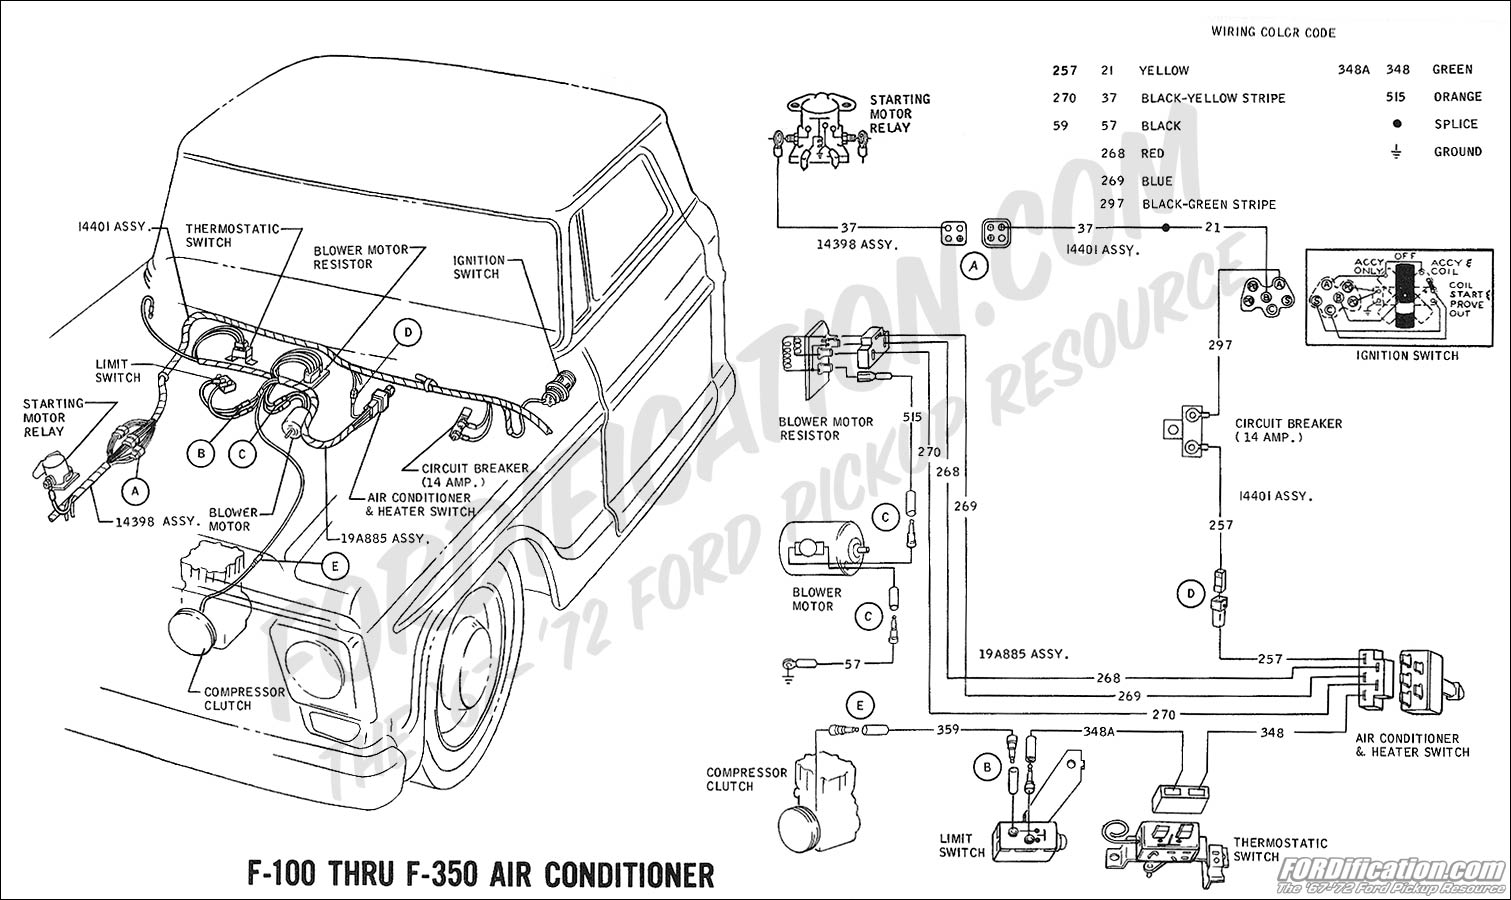 wiring_69ac 1999 ford f 150 radio wiring diagram chevy truck wiring diagram 1999 cadillac deville radio wiring diagram at panicattacktreatment.co